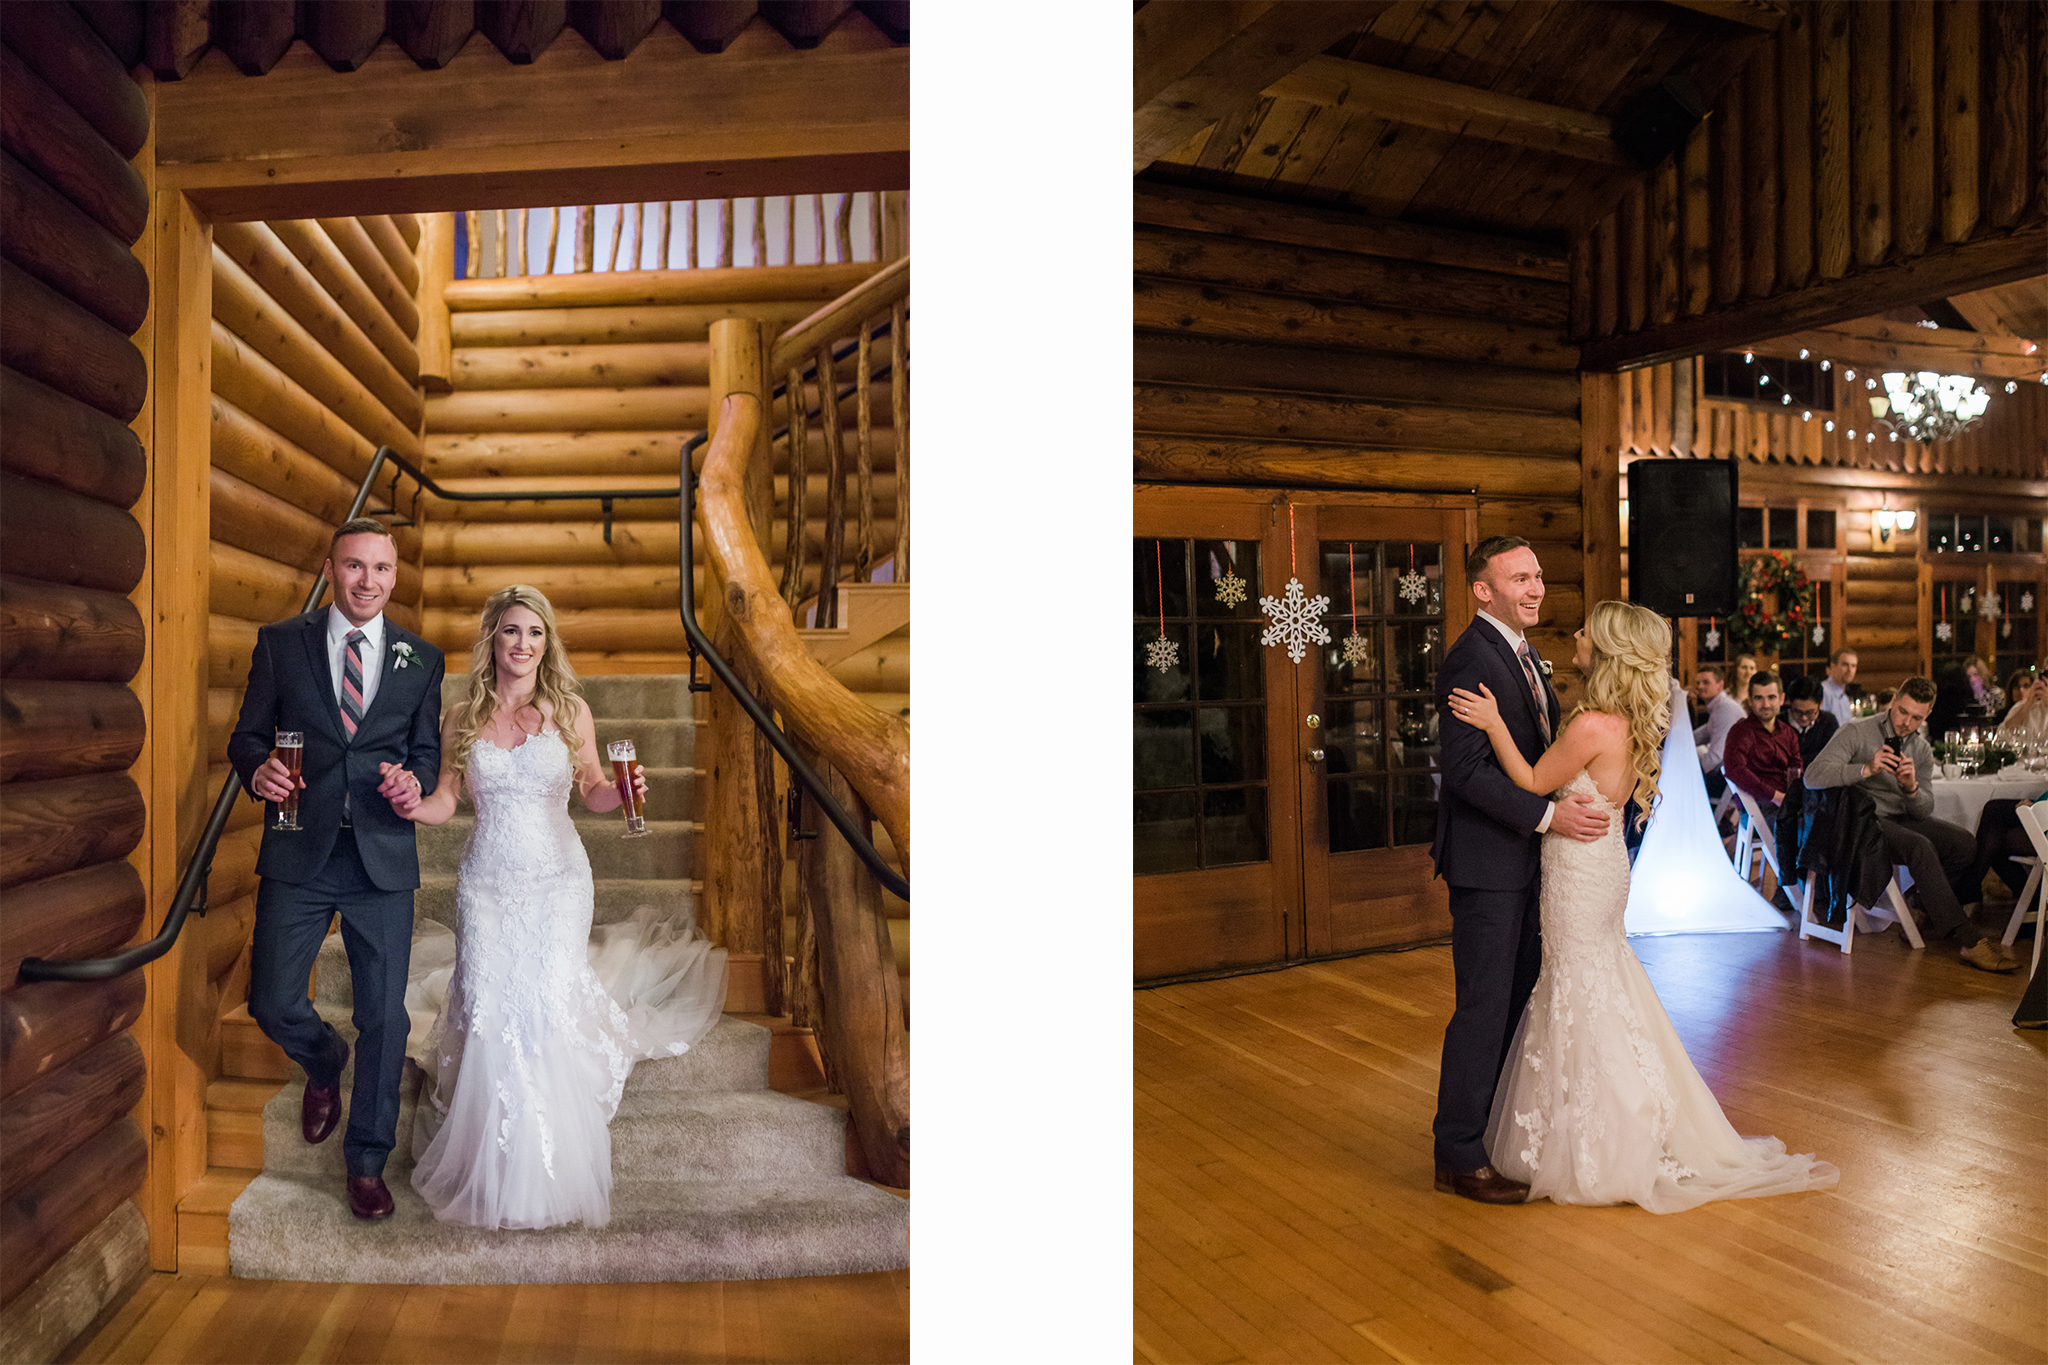 Ridgefield, WA wedding photographer, summit grove lodge weddings, first dance as husband and wife